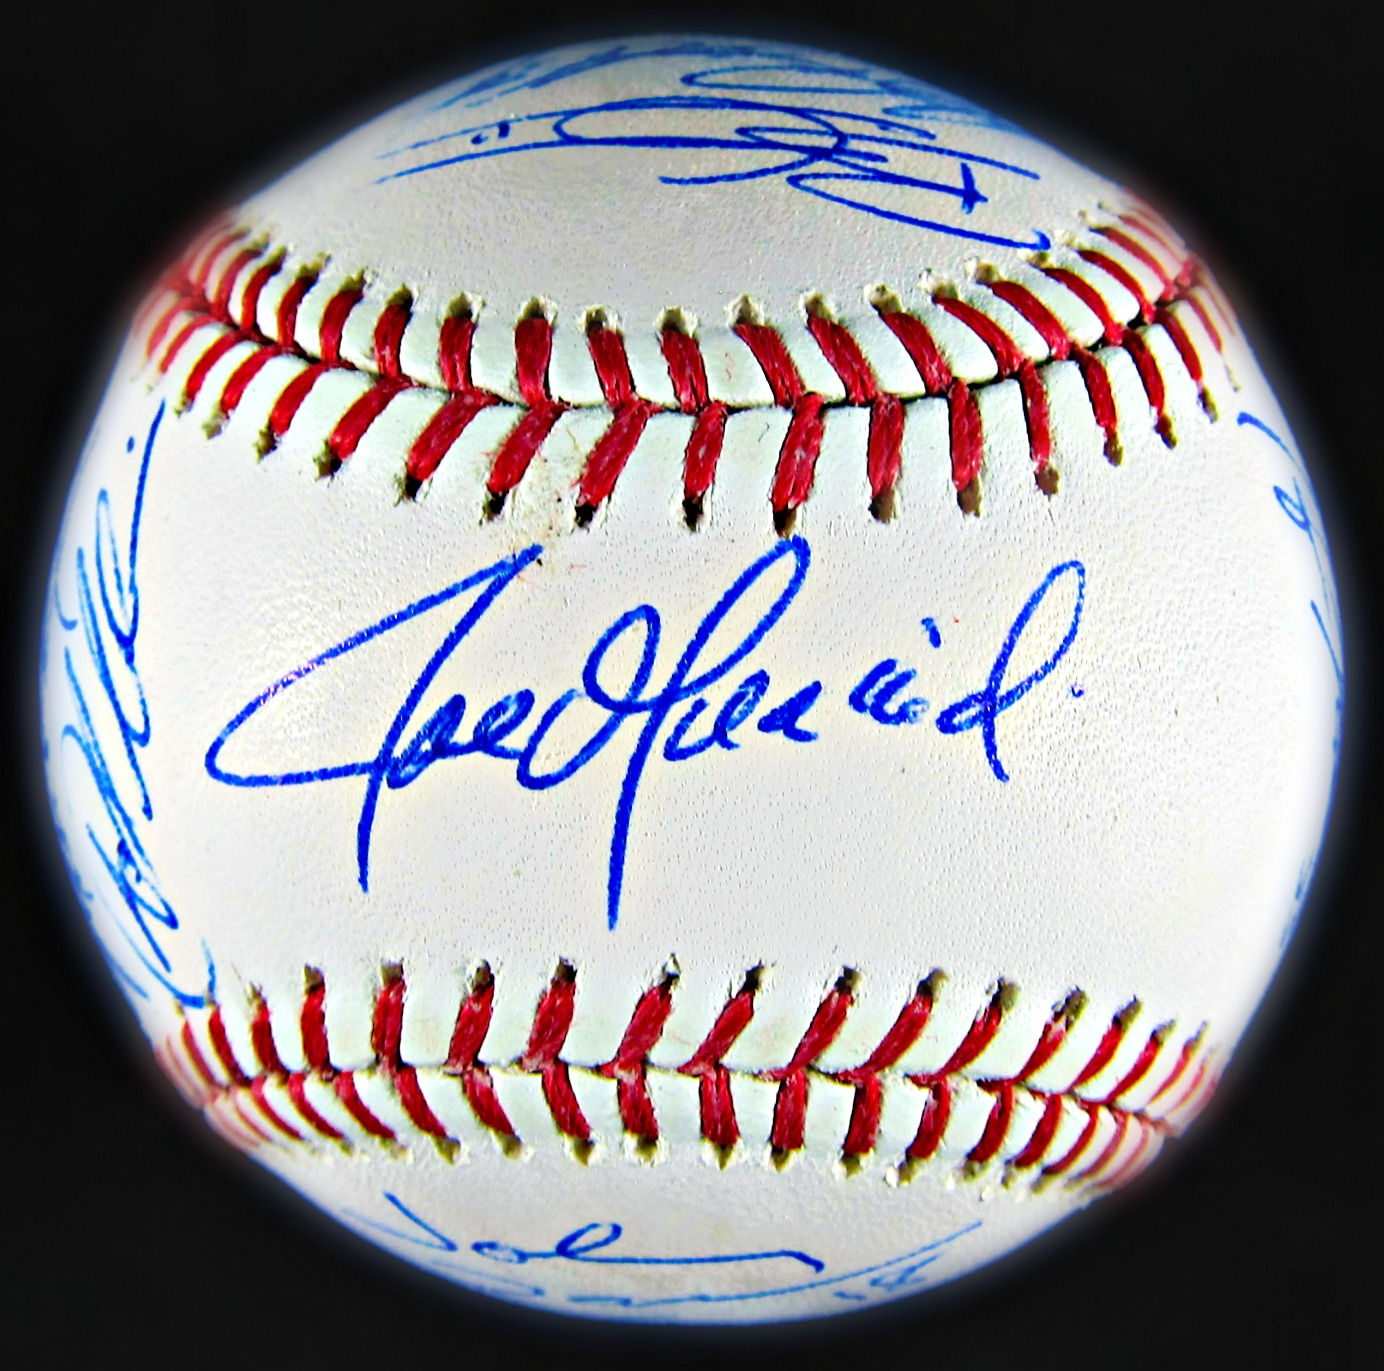 baseball memorabilla What is my sports memorabilia worth view our authentication guide for your sports cards, jerseys and autographed items at heritage auctions.